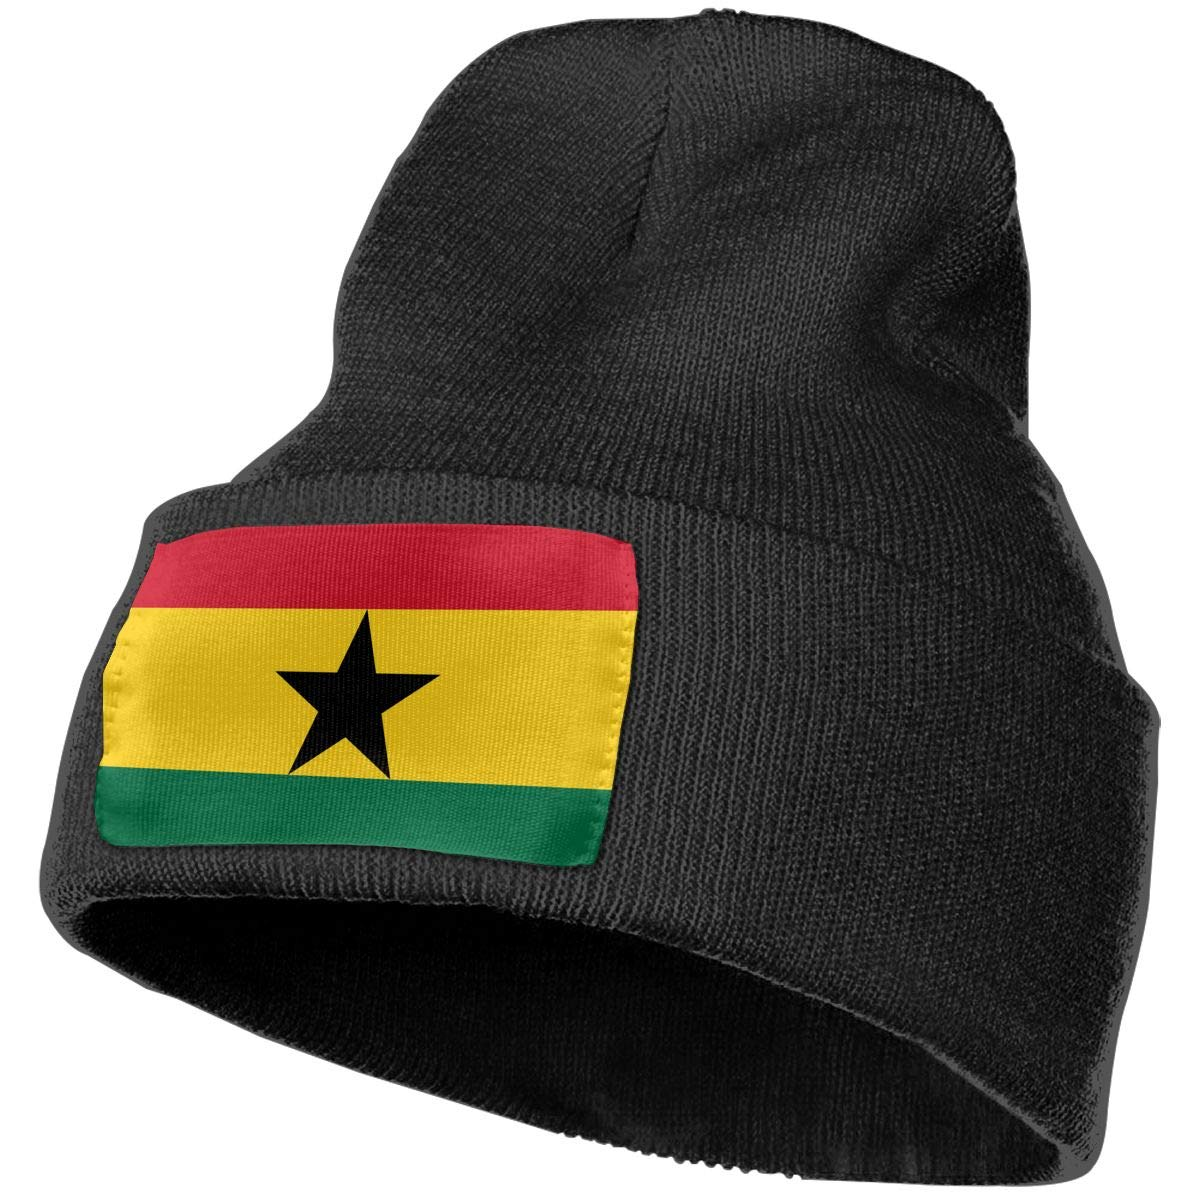 TAOMAP89 Ghana Flag Women and Men Skull Caps Winter Warm Stretchy Knitting Beanie Hats